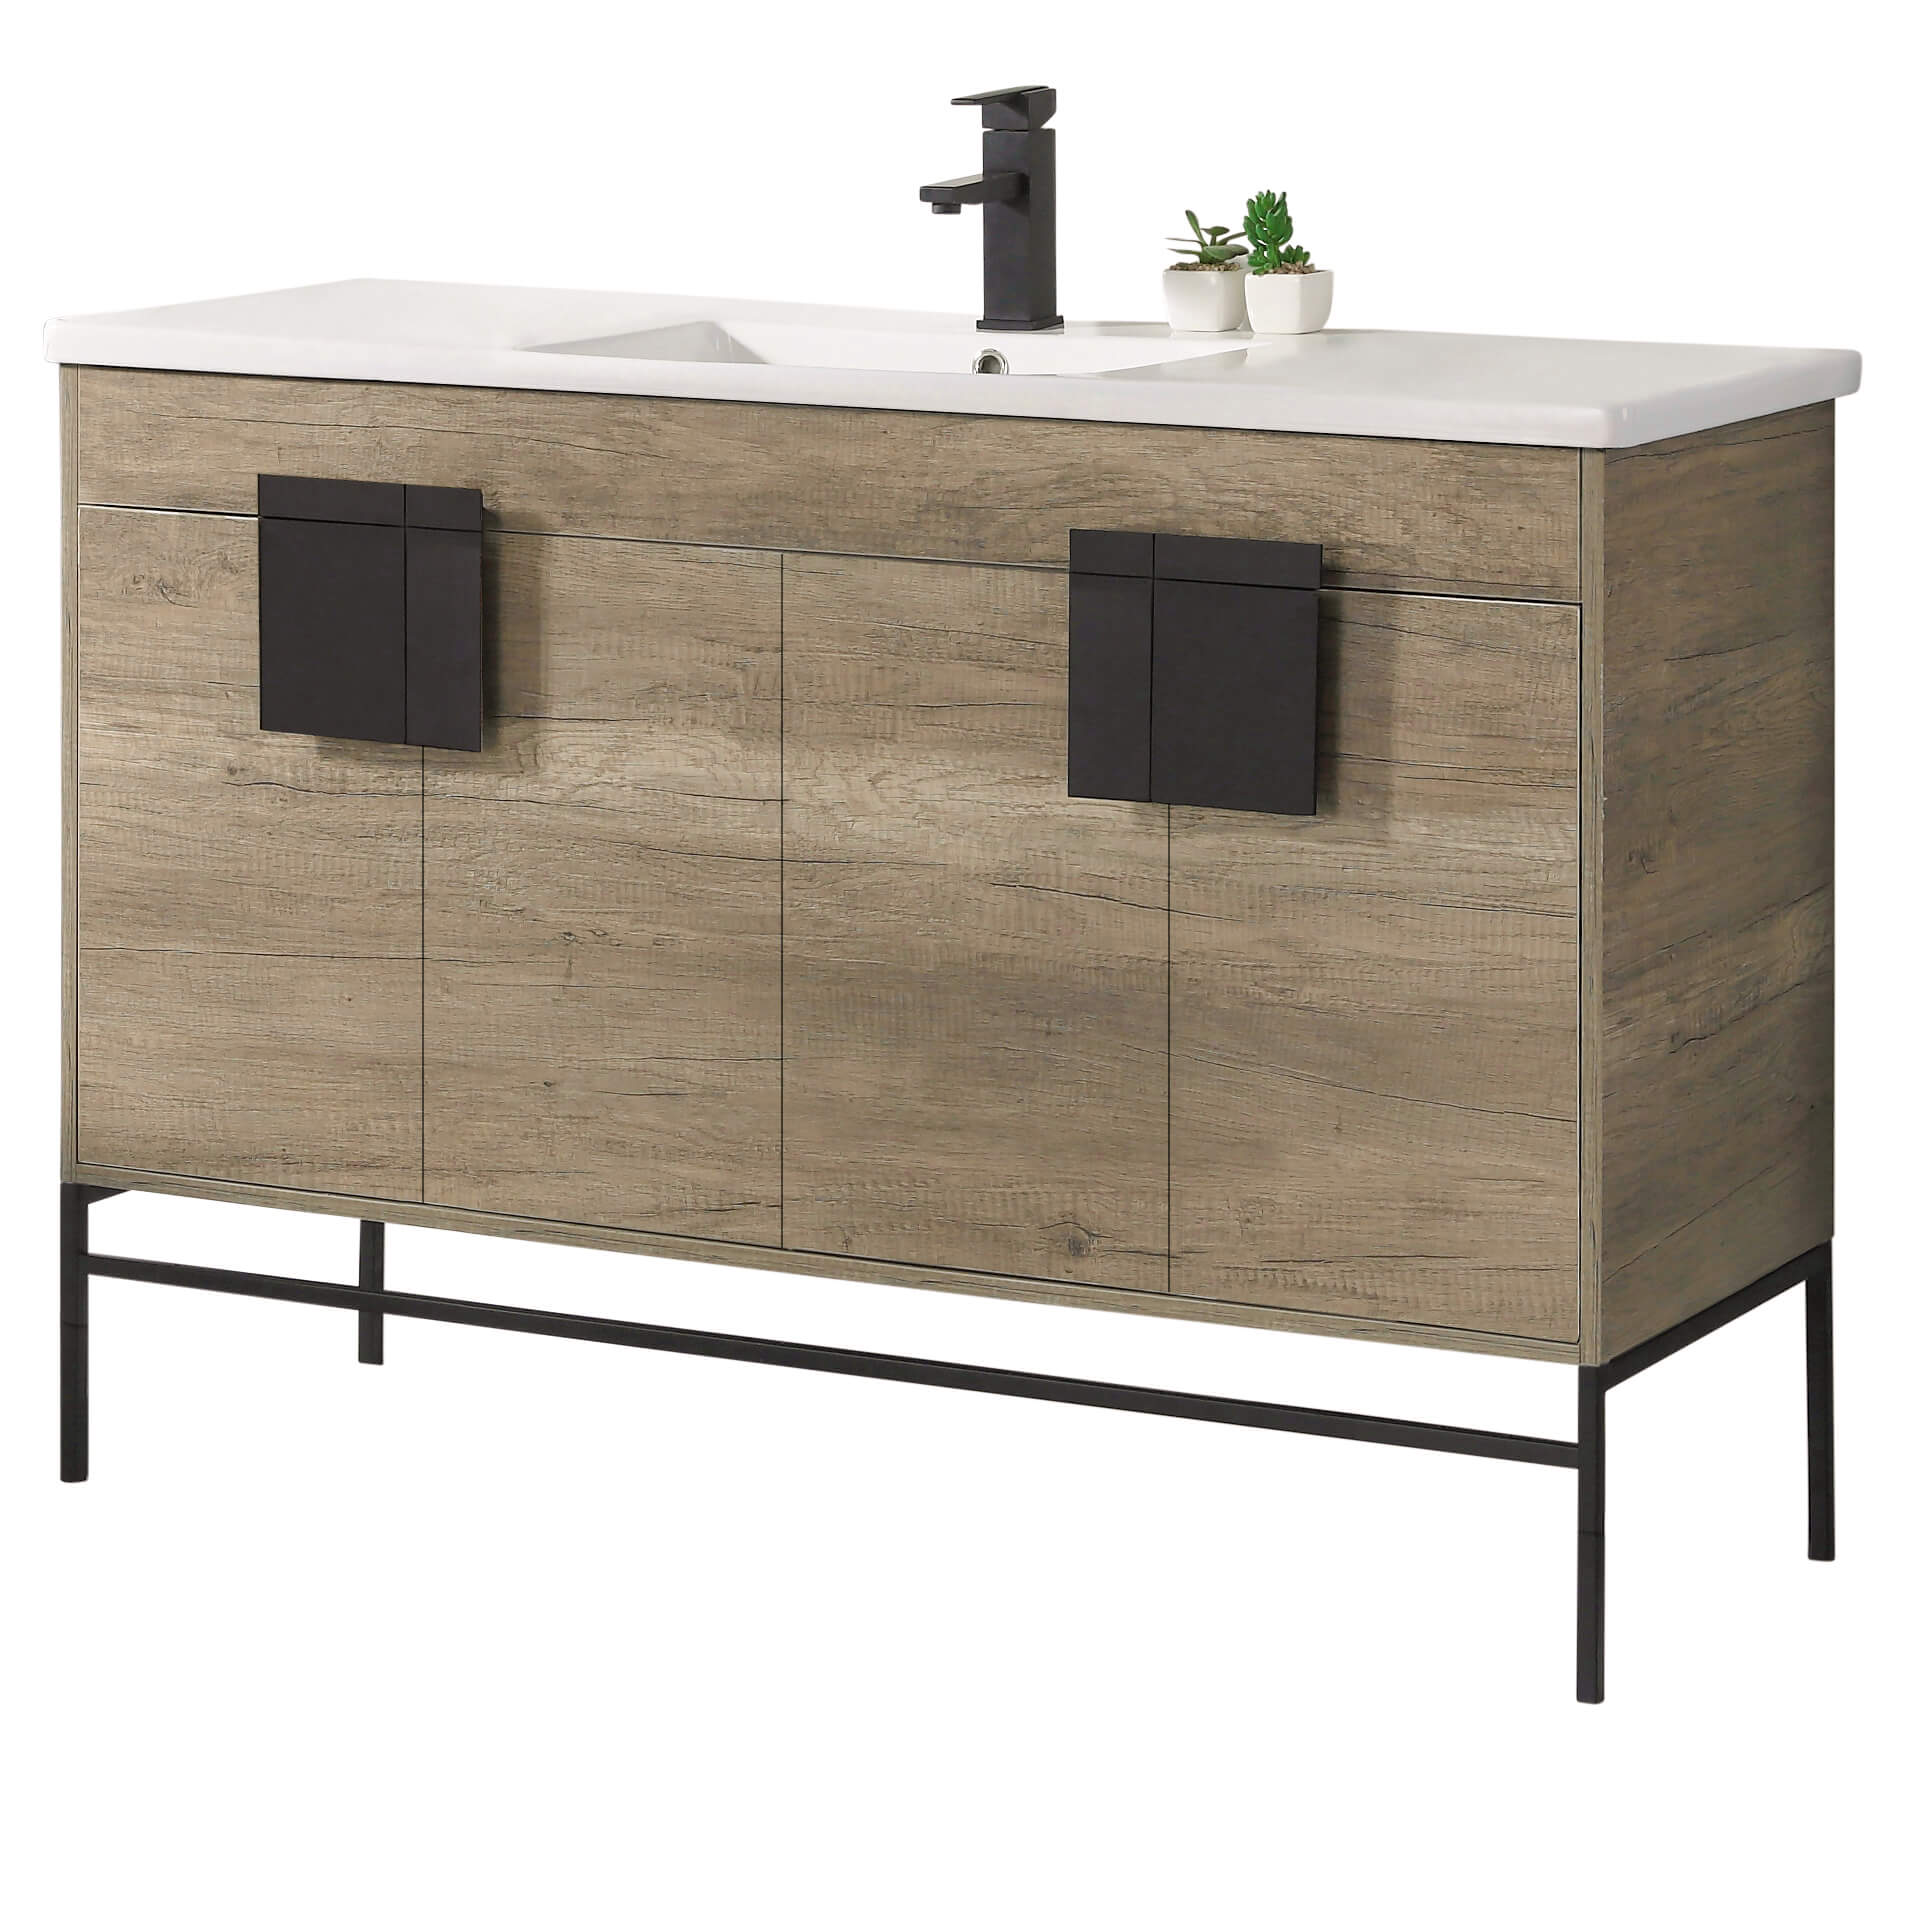 Modern Grey Bathroom Vanity Set Black Matte Hardware Vireous China Sink Top Walmart Com Walmart Com